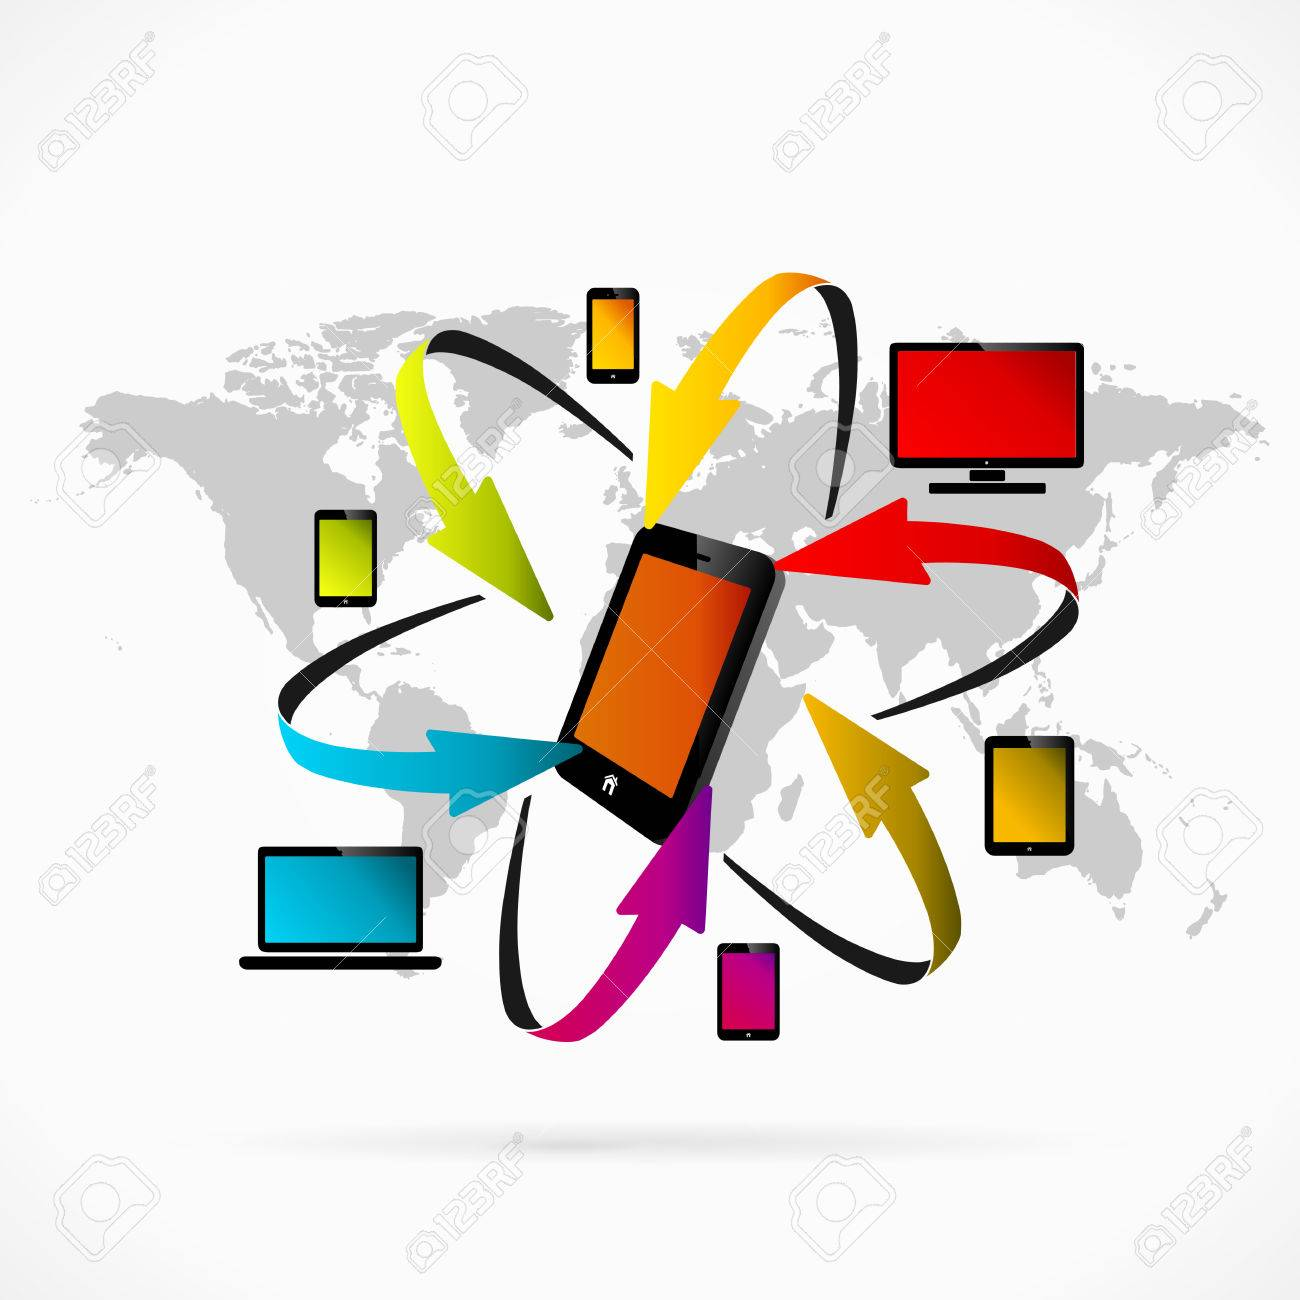 Abstract illustration of mobile phone synchronization Stock Vector - 25429140